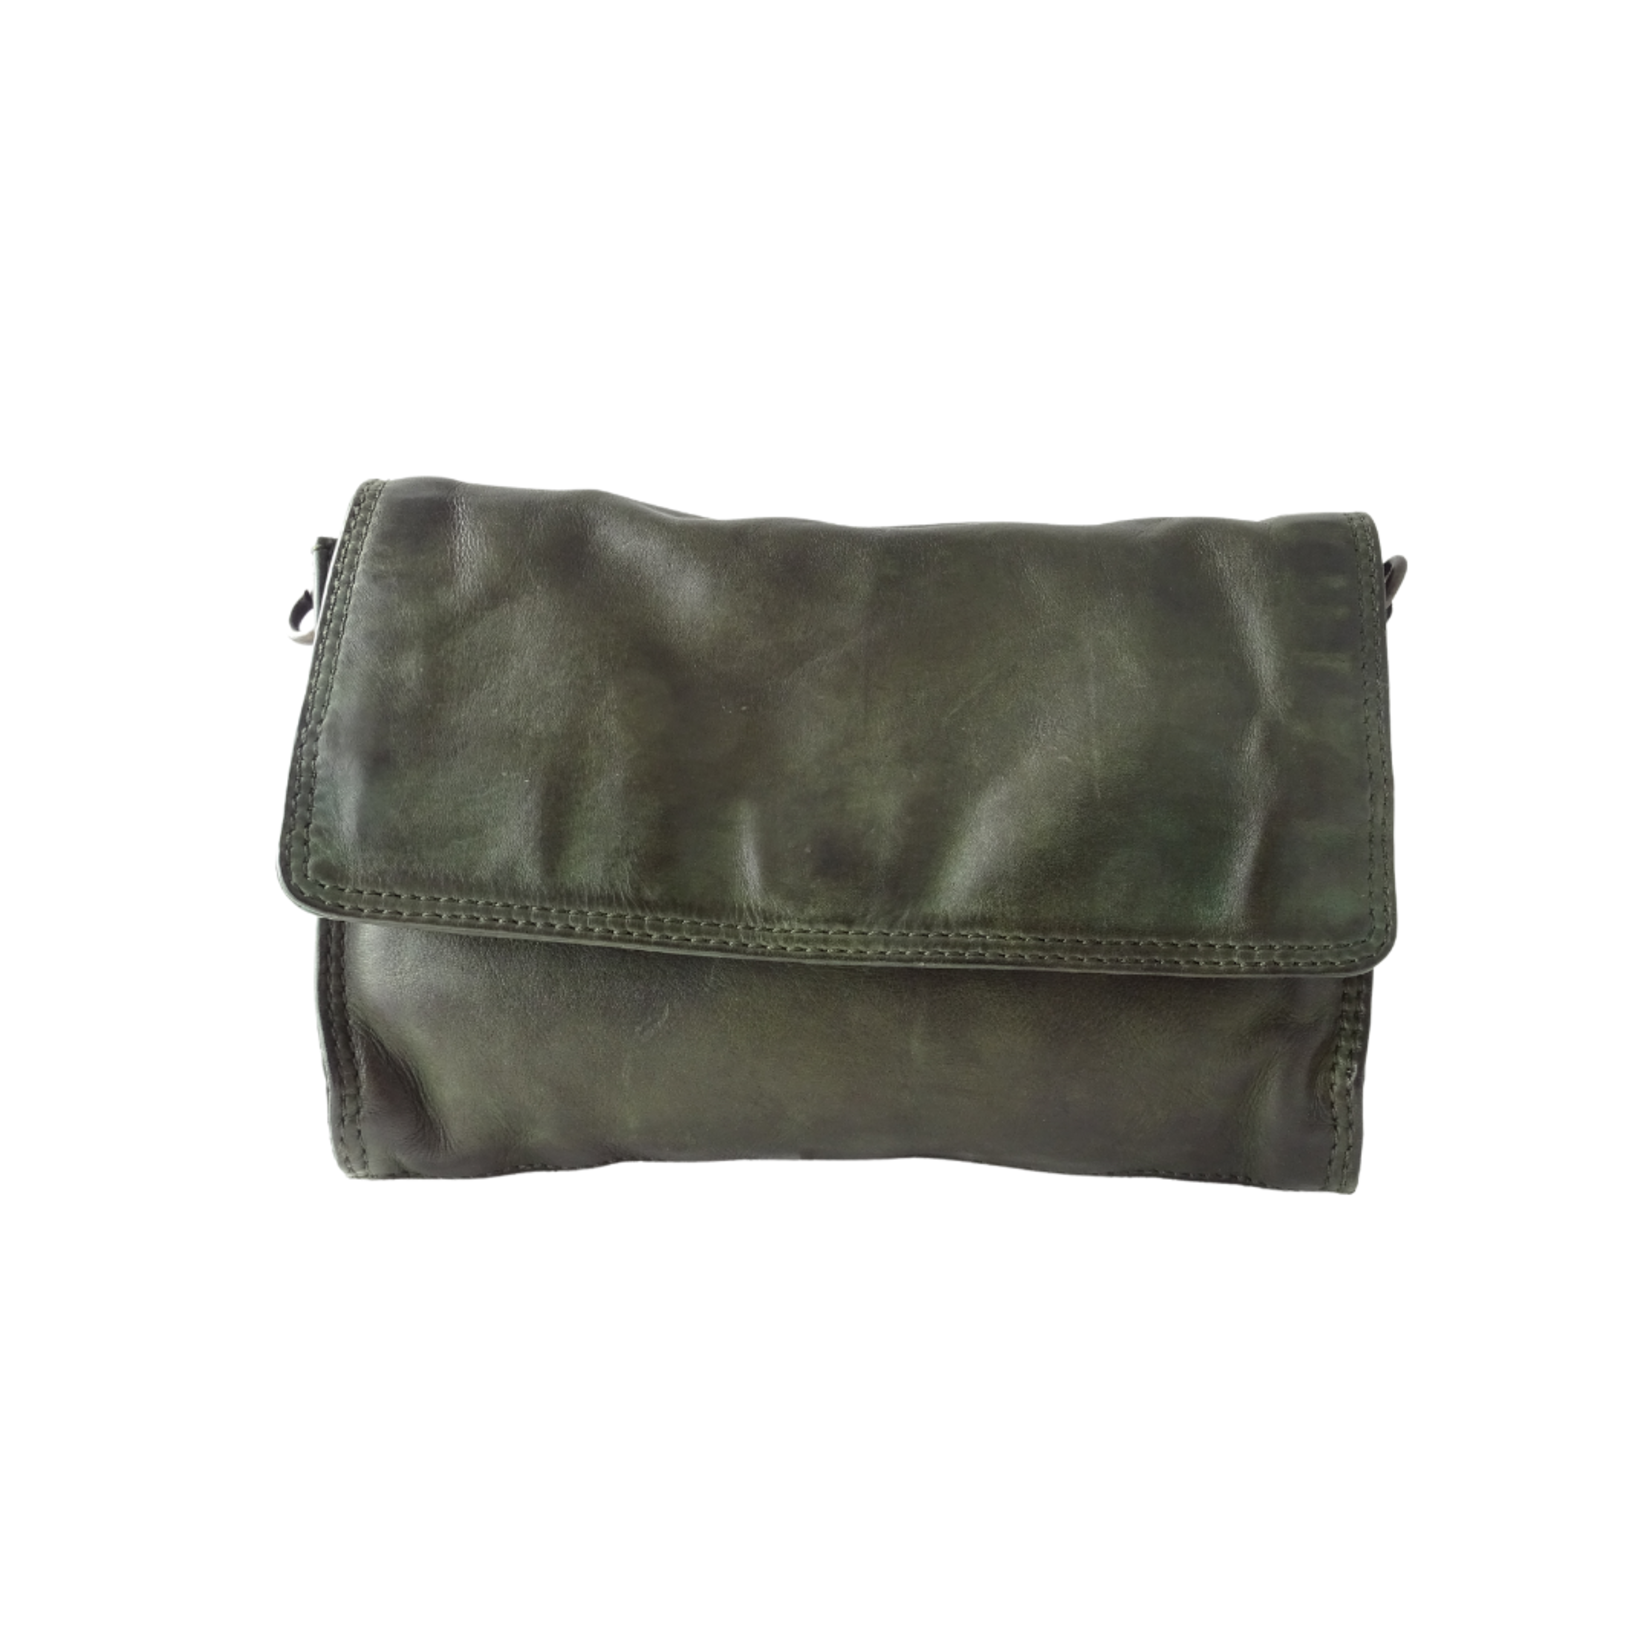 The Trend The Trend 22303 green